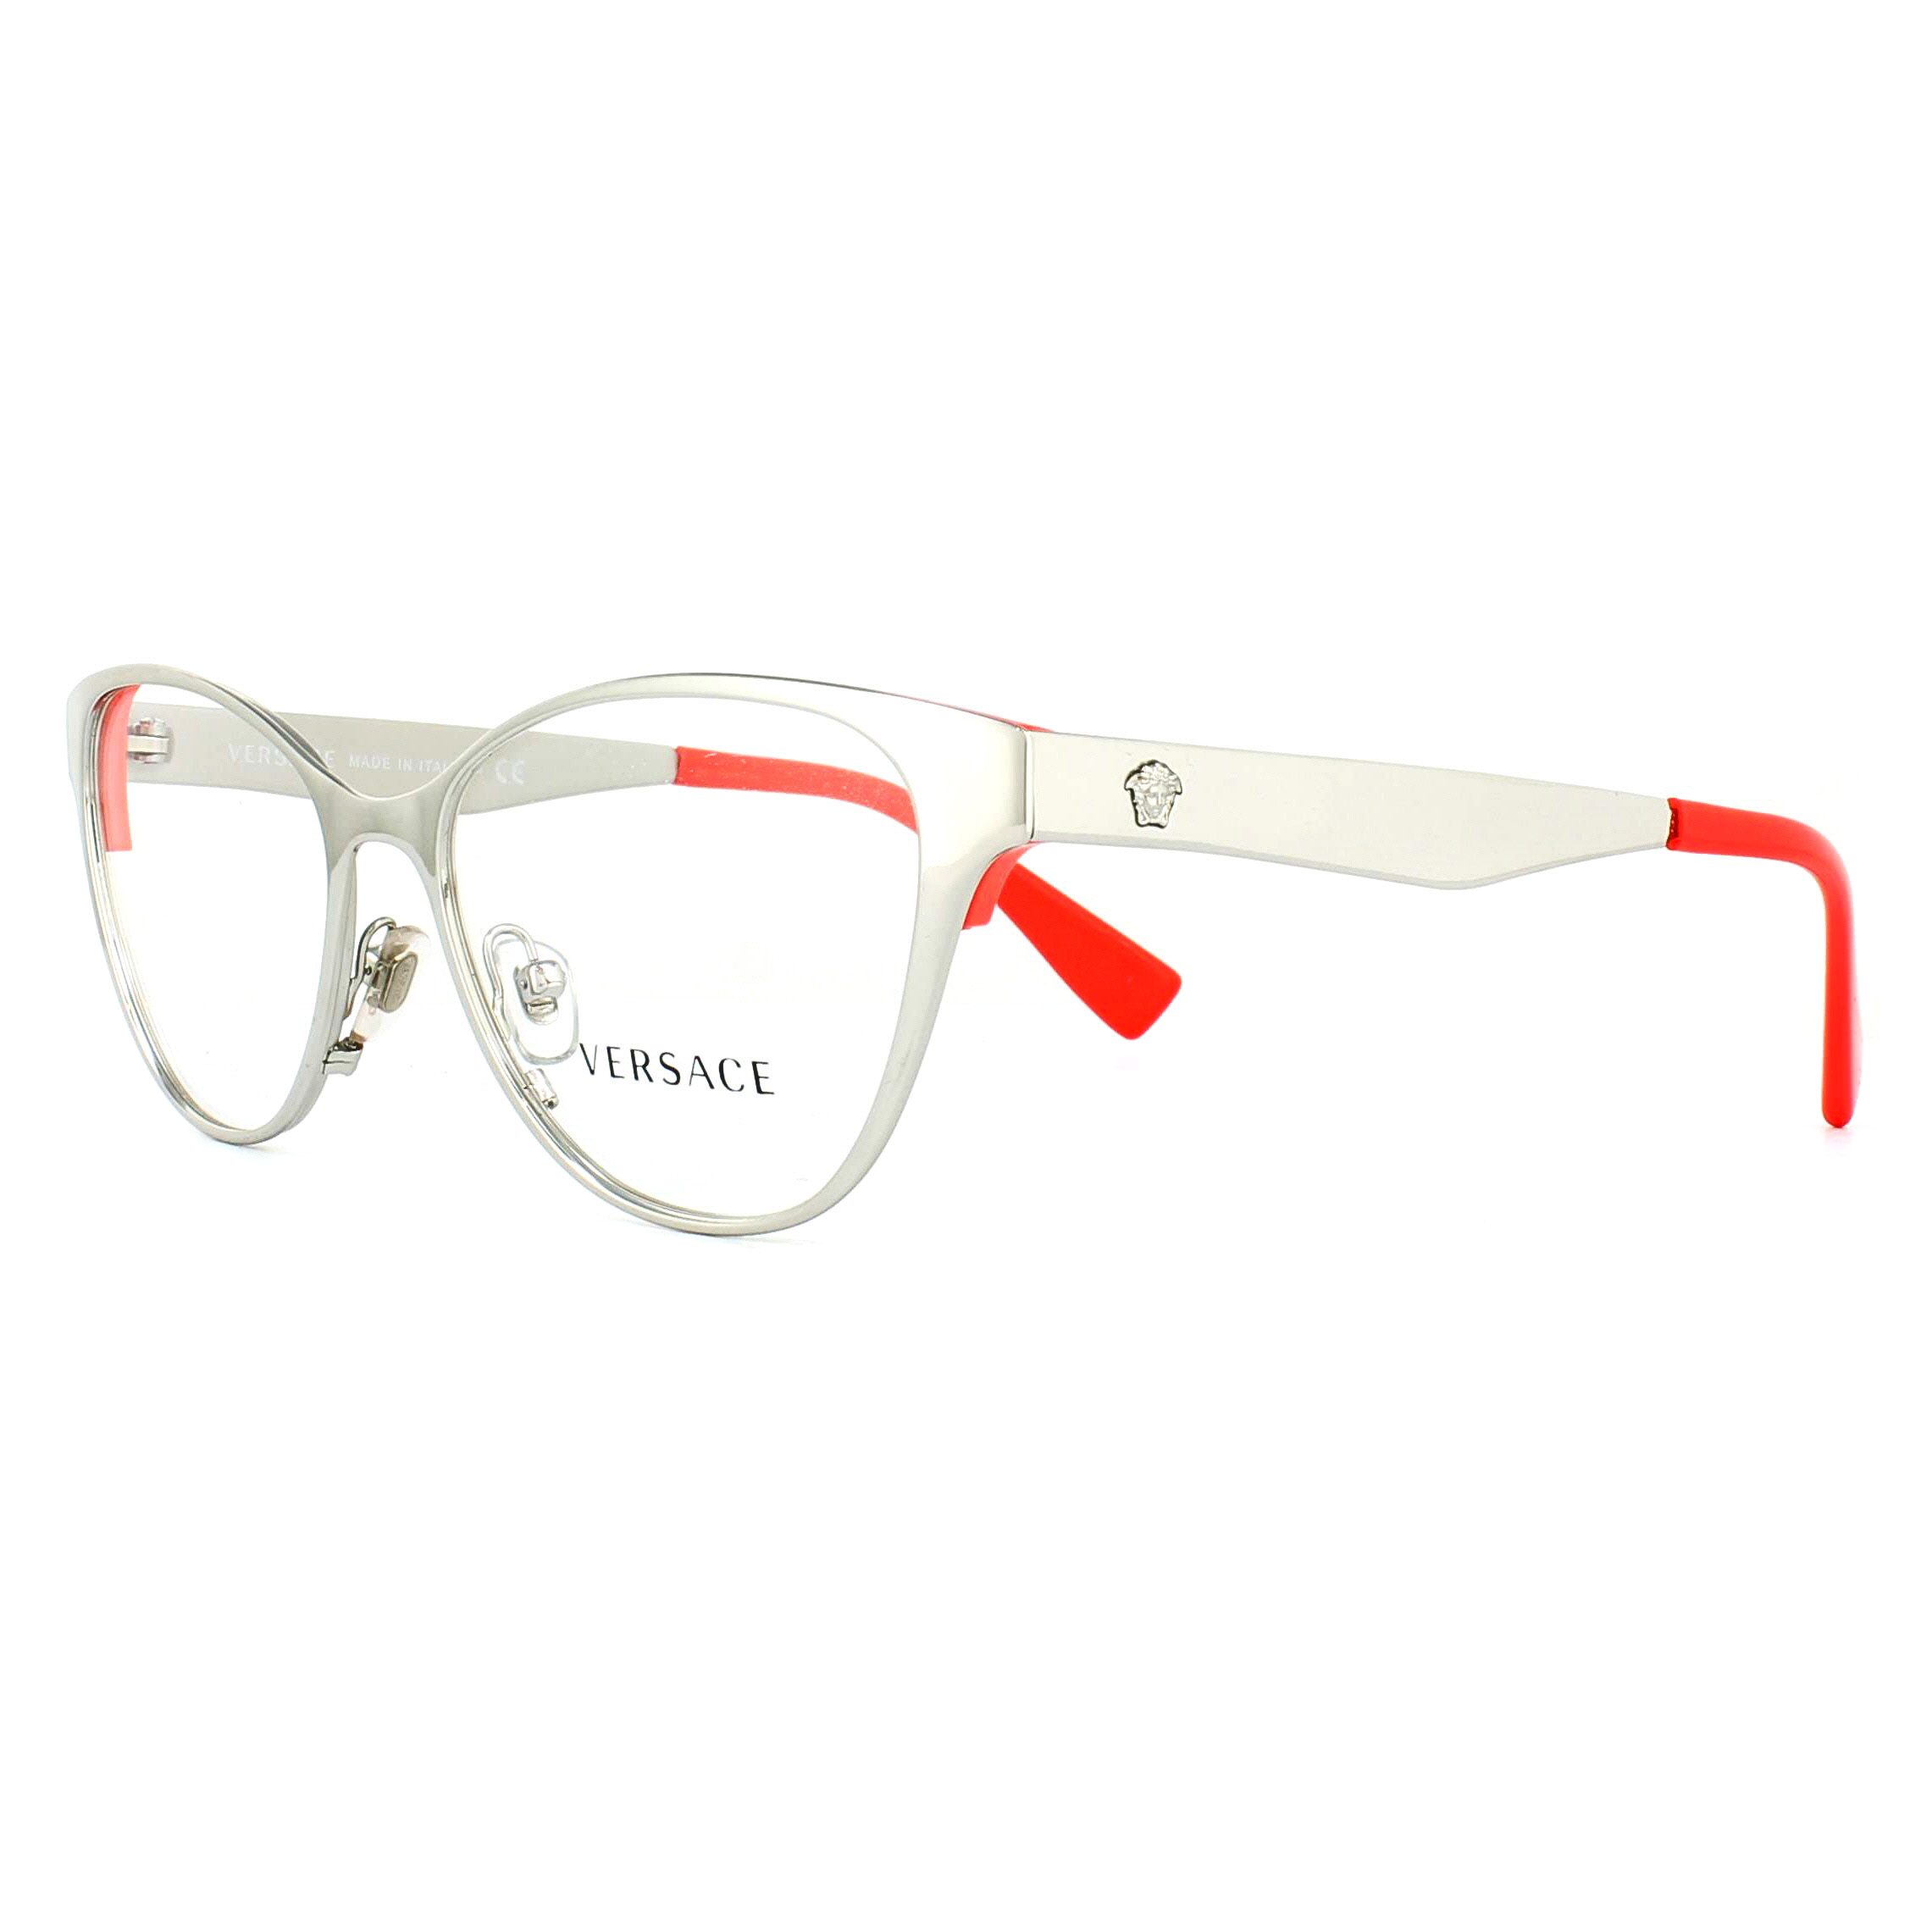 ce1c14e329 Sentinel Versace Glasses Frames 1245 1000 Silver and Red 53mm Womens